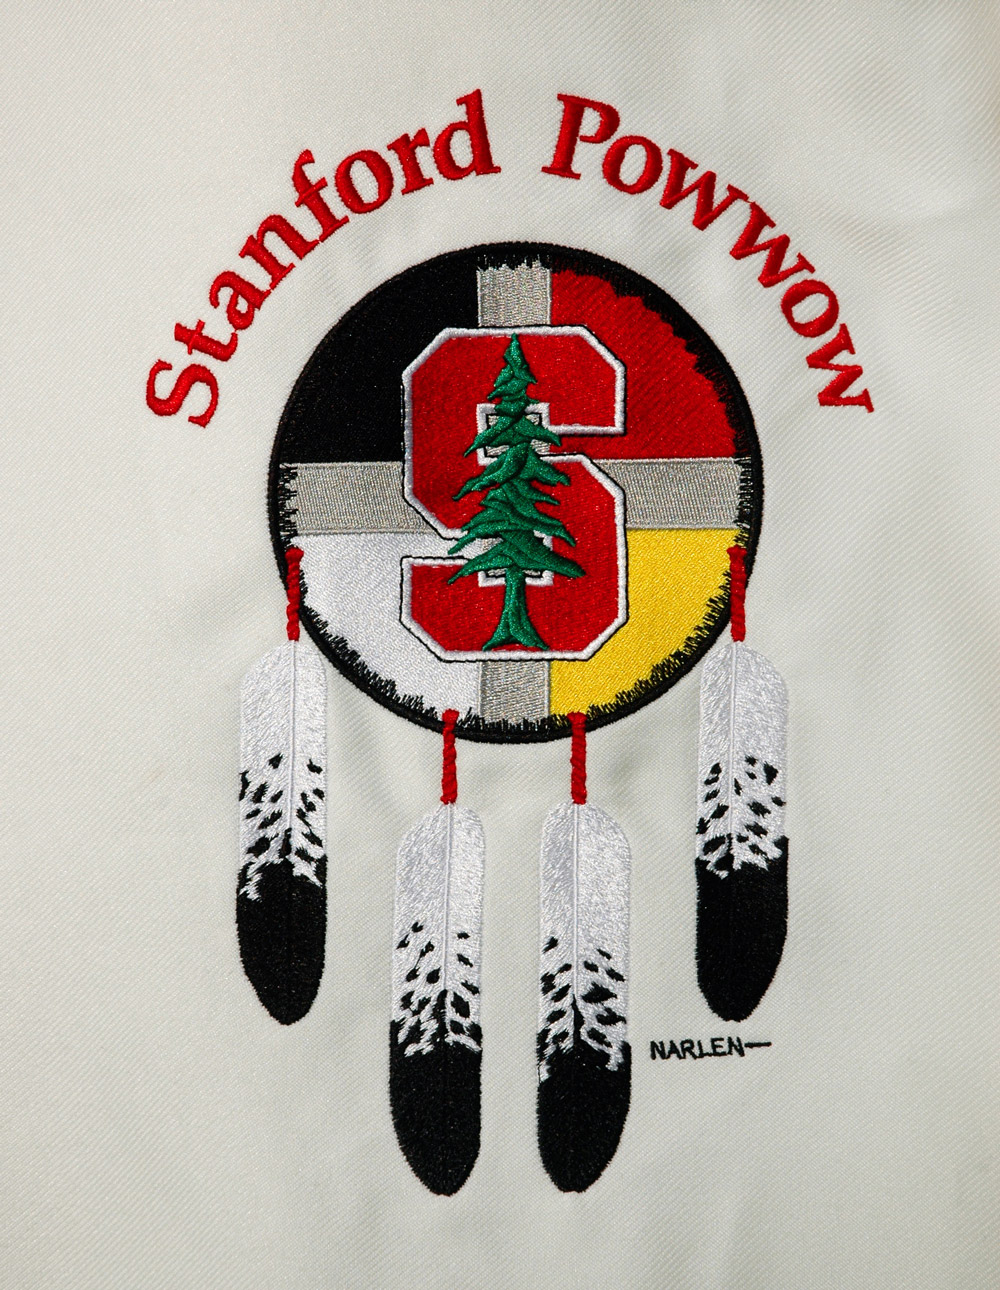 Embroidery of Stanford Powwow